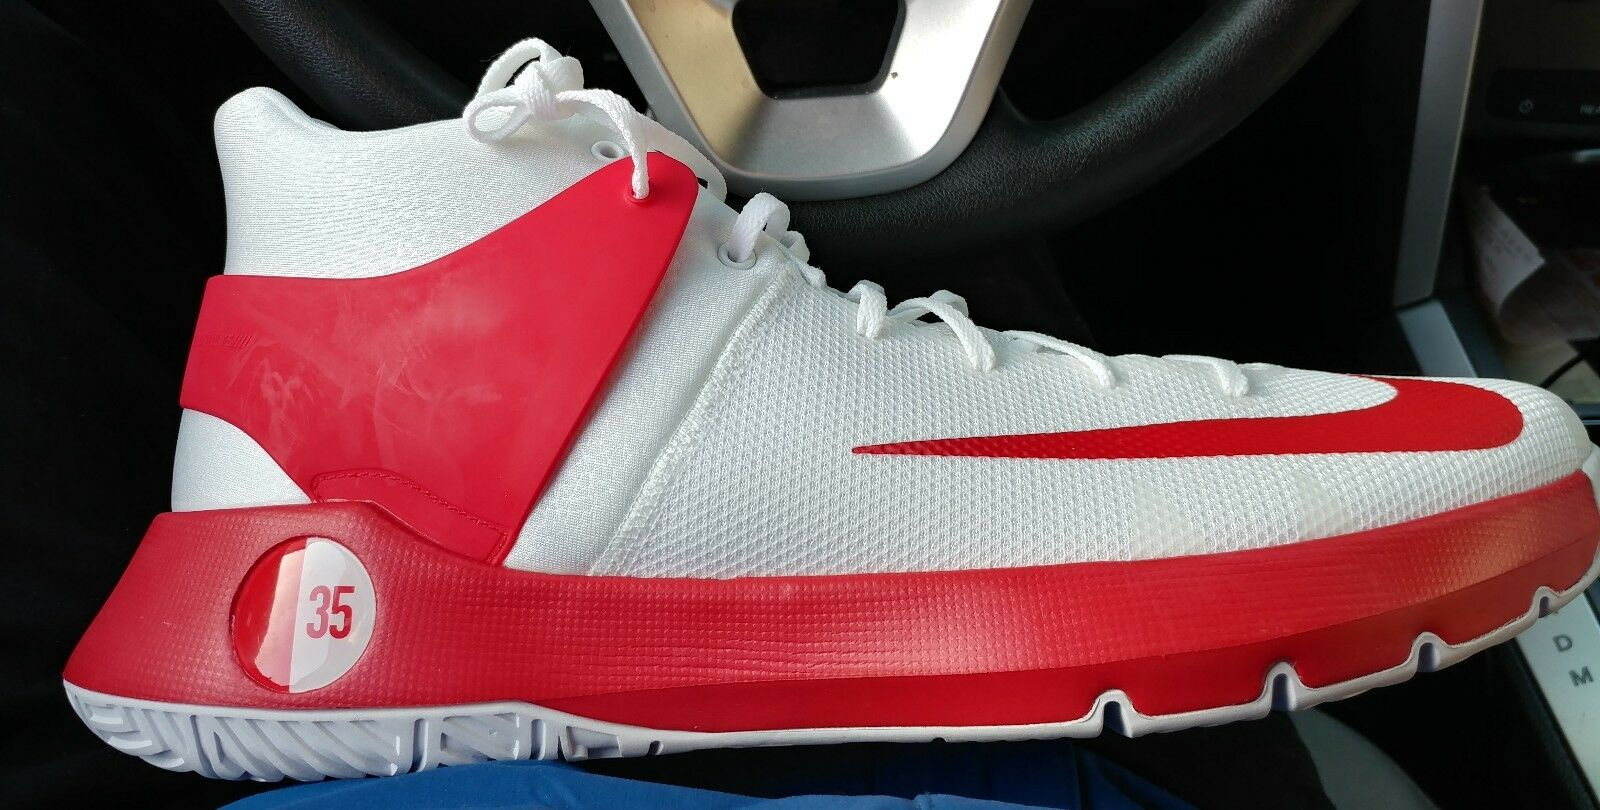 Nike KD Trey 5 Sz 17 TB Basketball Shoe White Red 856484-161 Rare Kevin Durant best-selling model of the brand